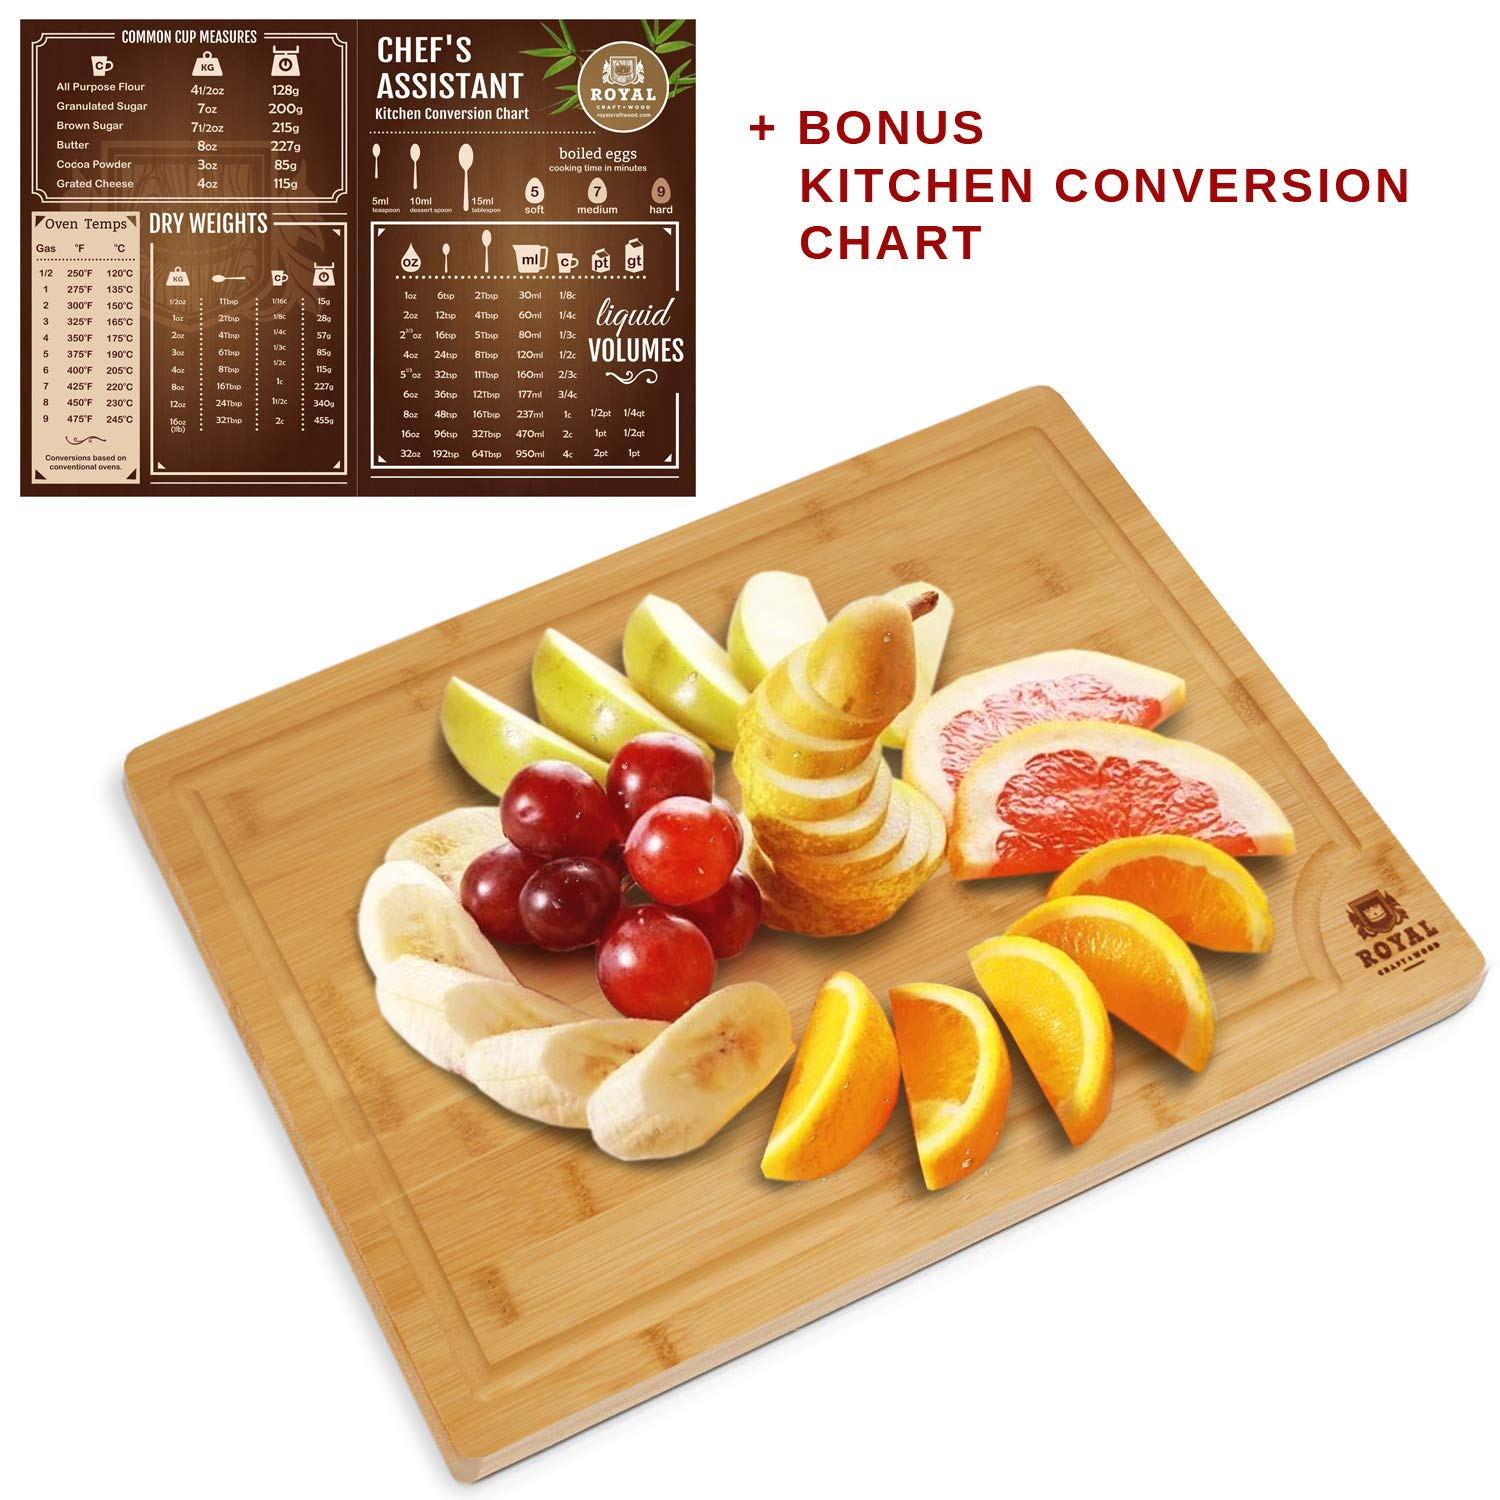 Bamboo Cutting Board w/Juice Groove & Handles - Butcher Block for Chopping Meat & Vegetables - Kitchen Cutting Boards, 10x15 by Royal Craft Wood (Image #5)